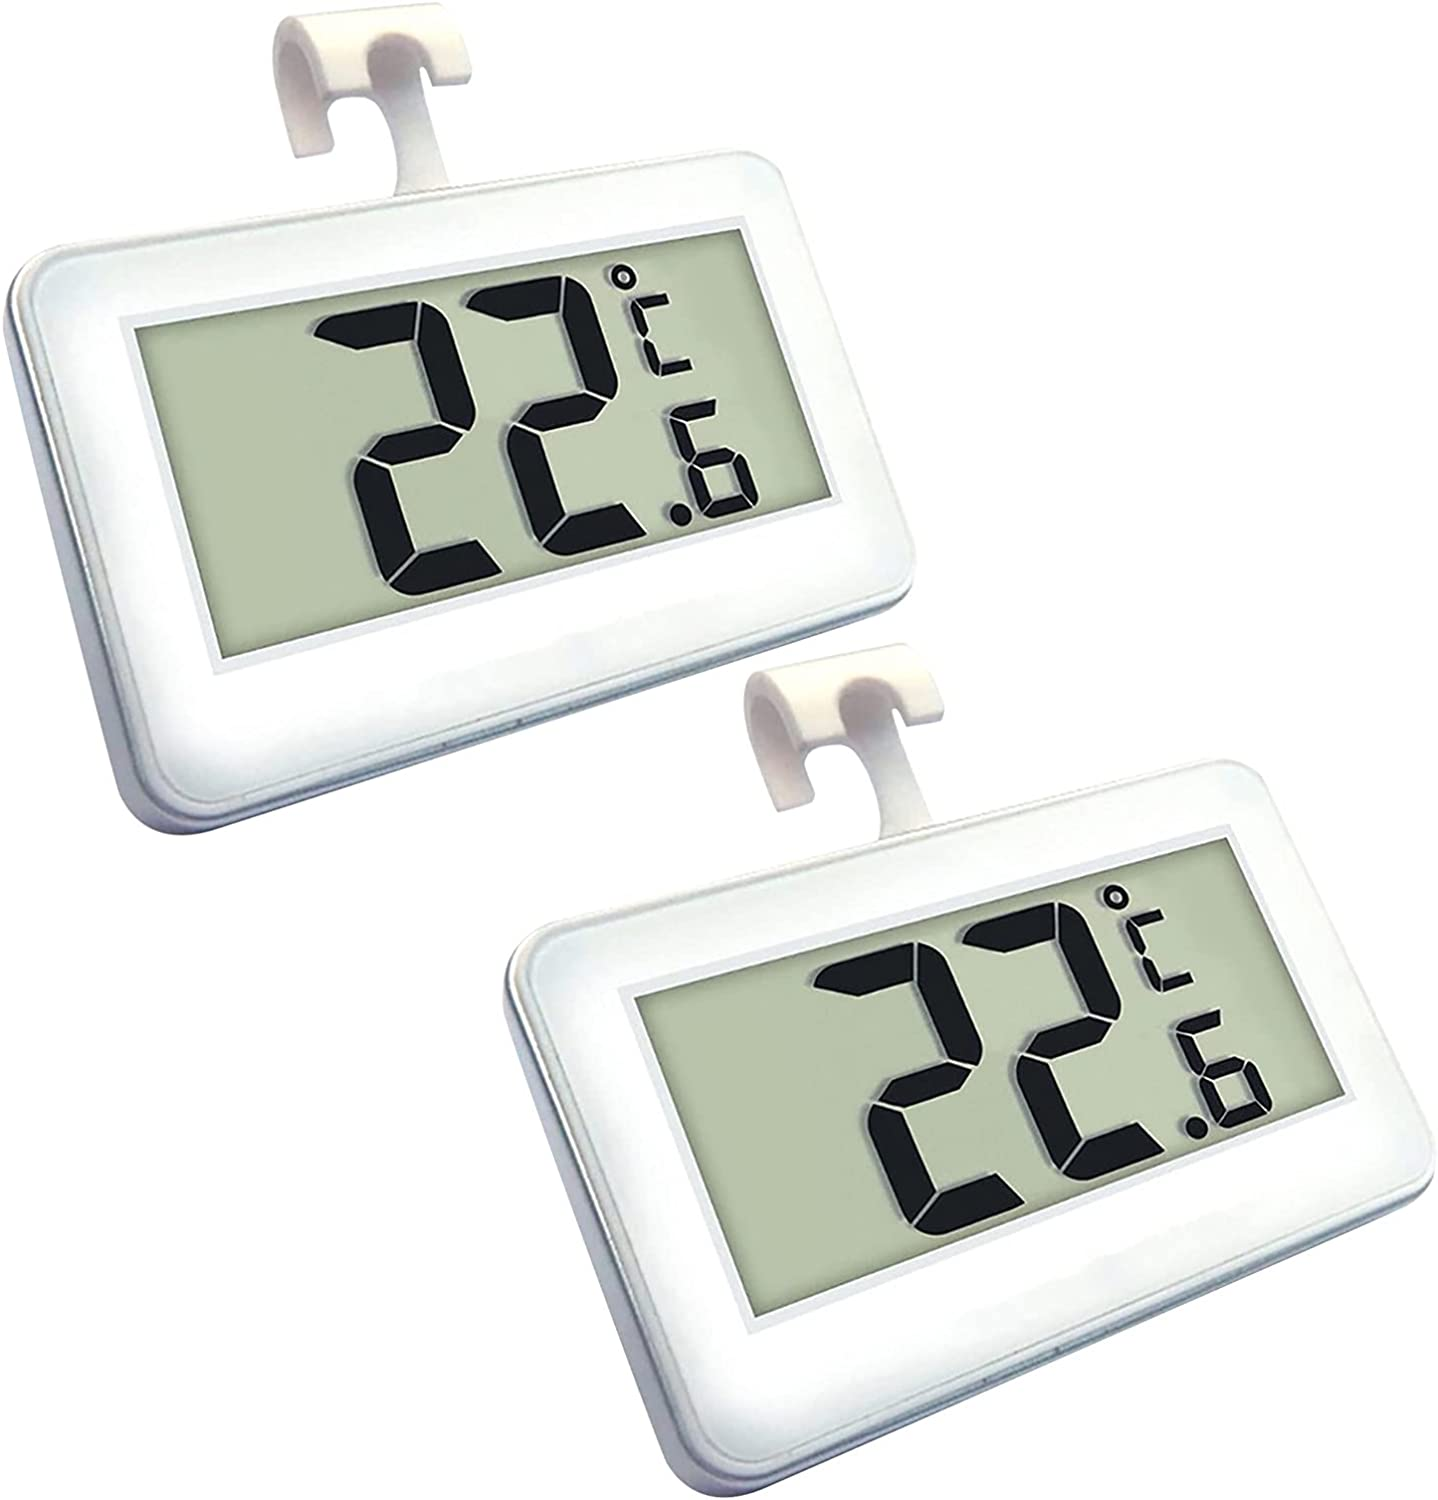 2pcs Popular overseas can Japan's largest assortment hang household digital LCD display thermometer Fahrenh